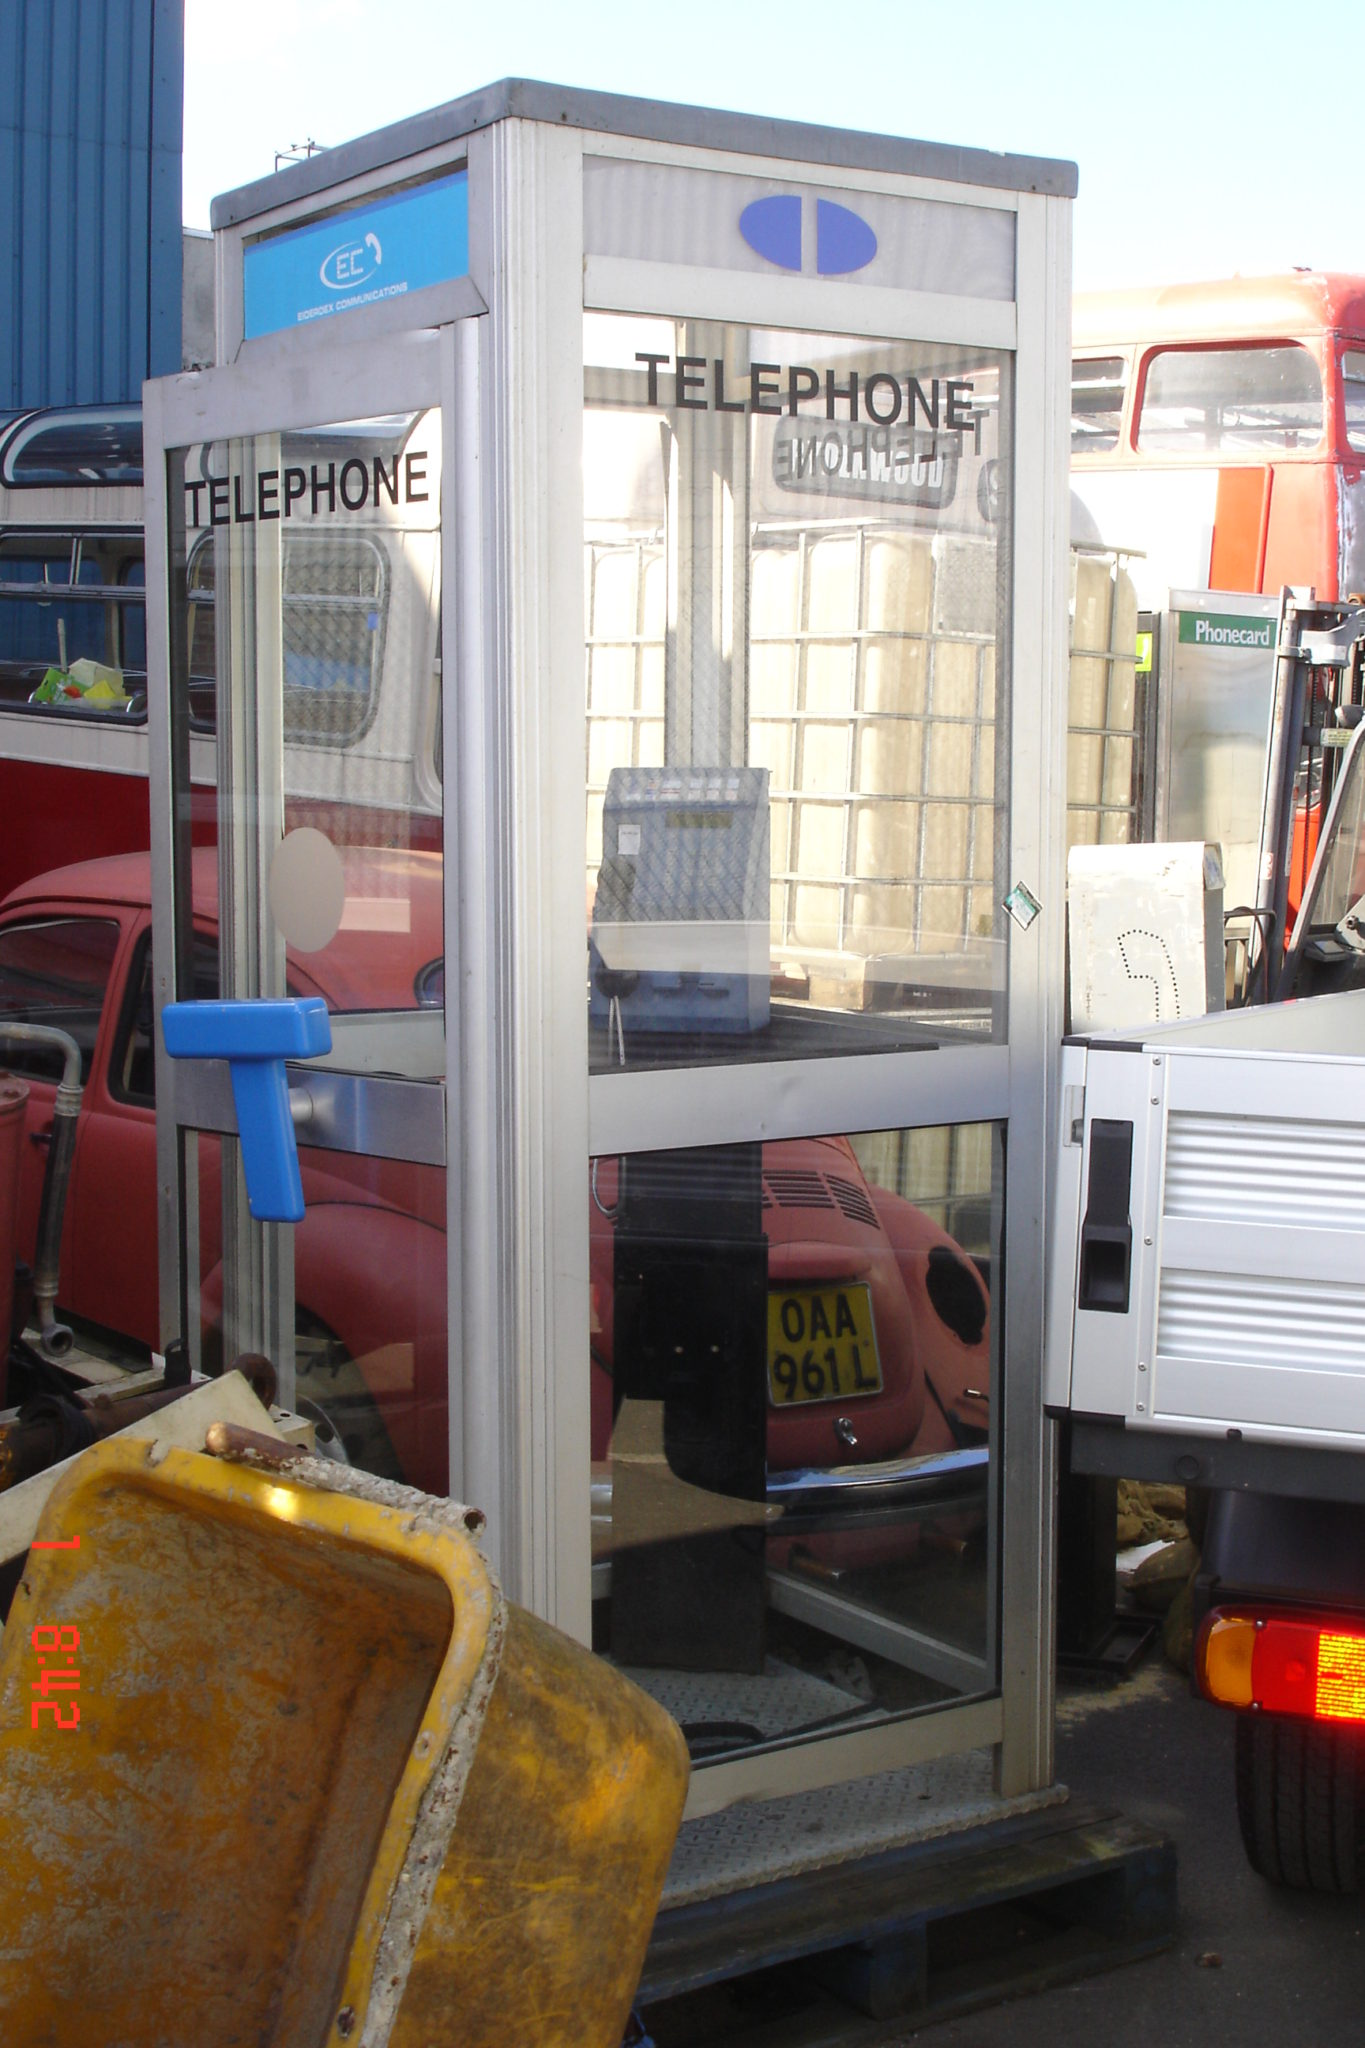 Telephone Booth - Telephone Booth